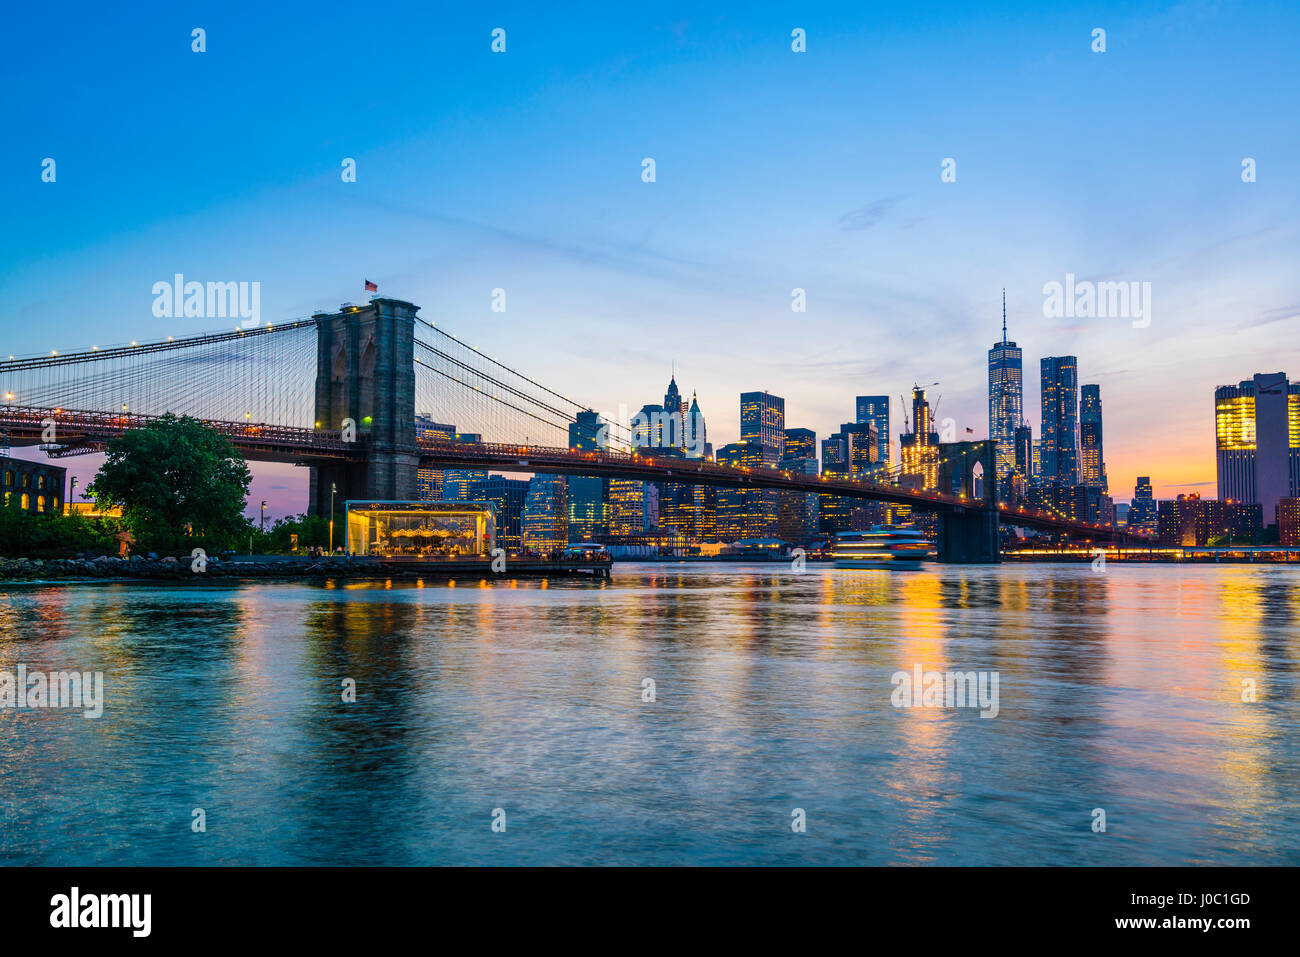 Brooklyn Bridge and Manhattan skyline at dusk, viewed from the East River, New York City, USA - Stock Image